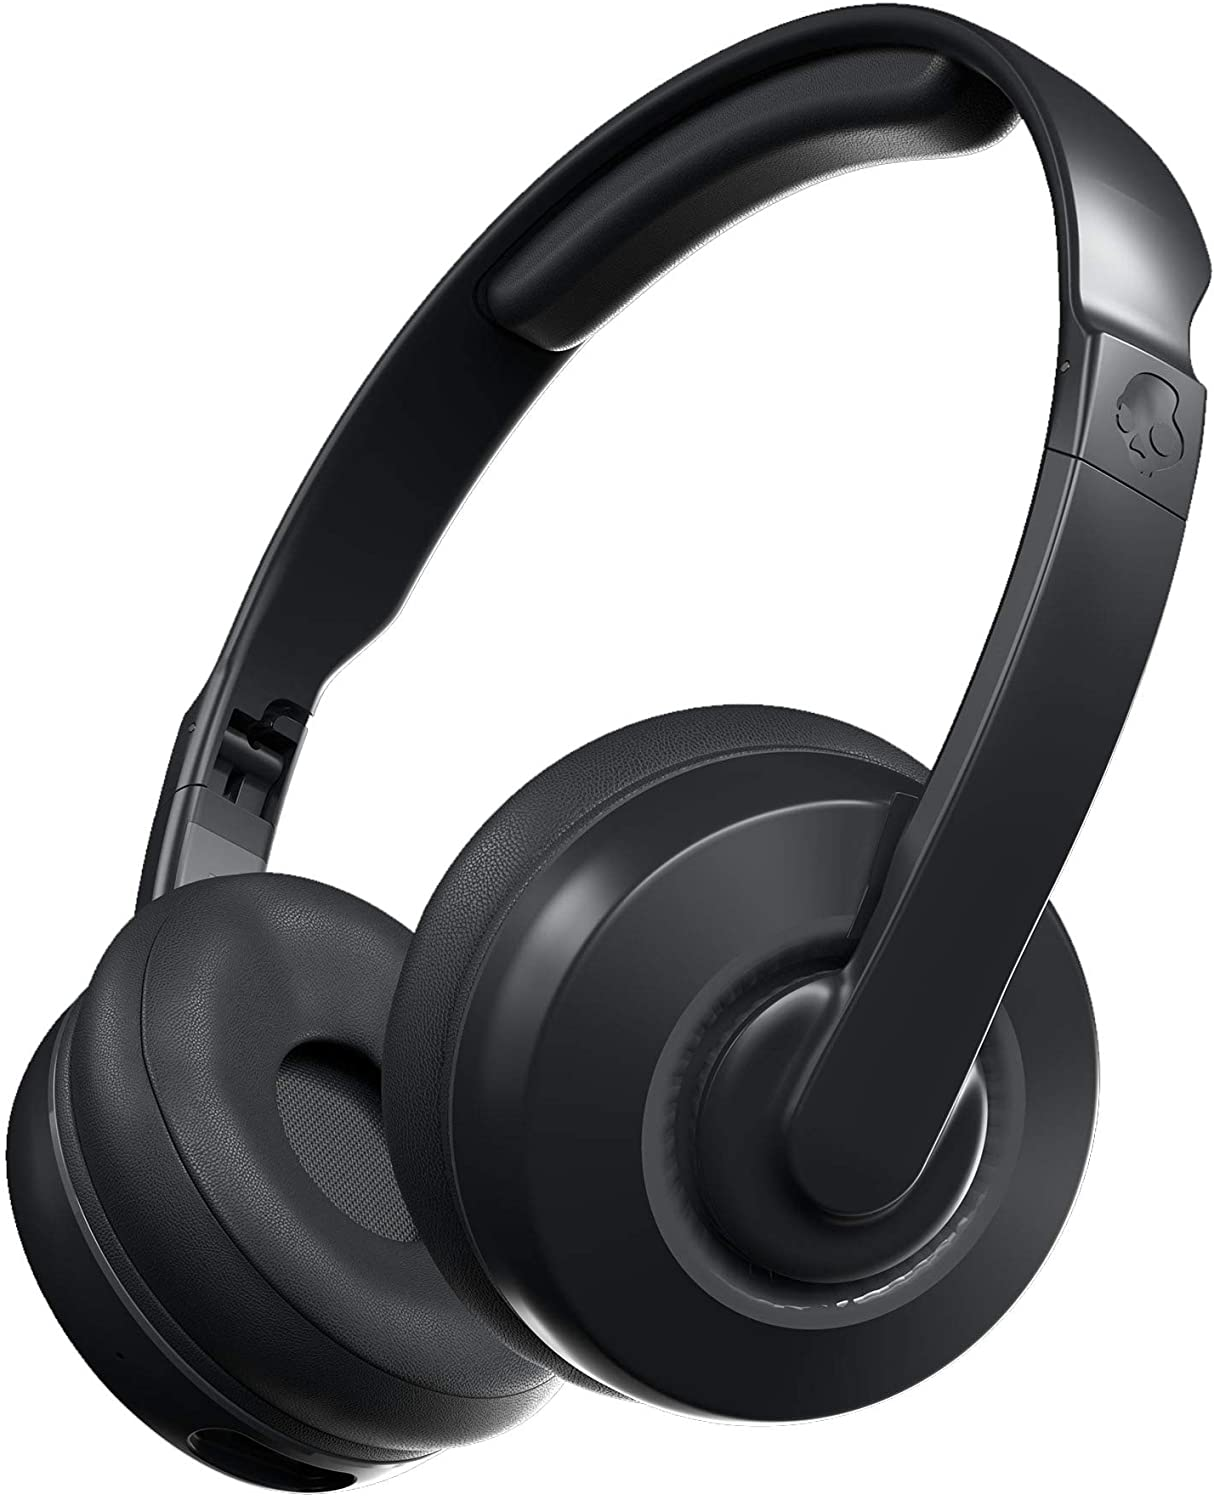 Skullcandy Cassette Wireless Over-Ear Headphone - Black